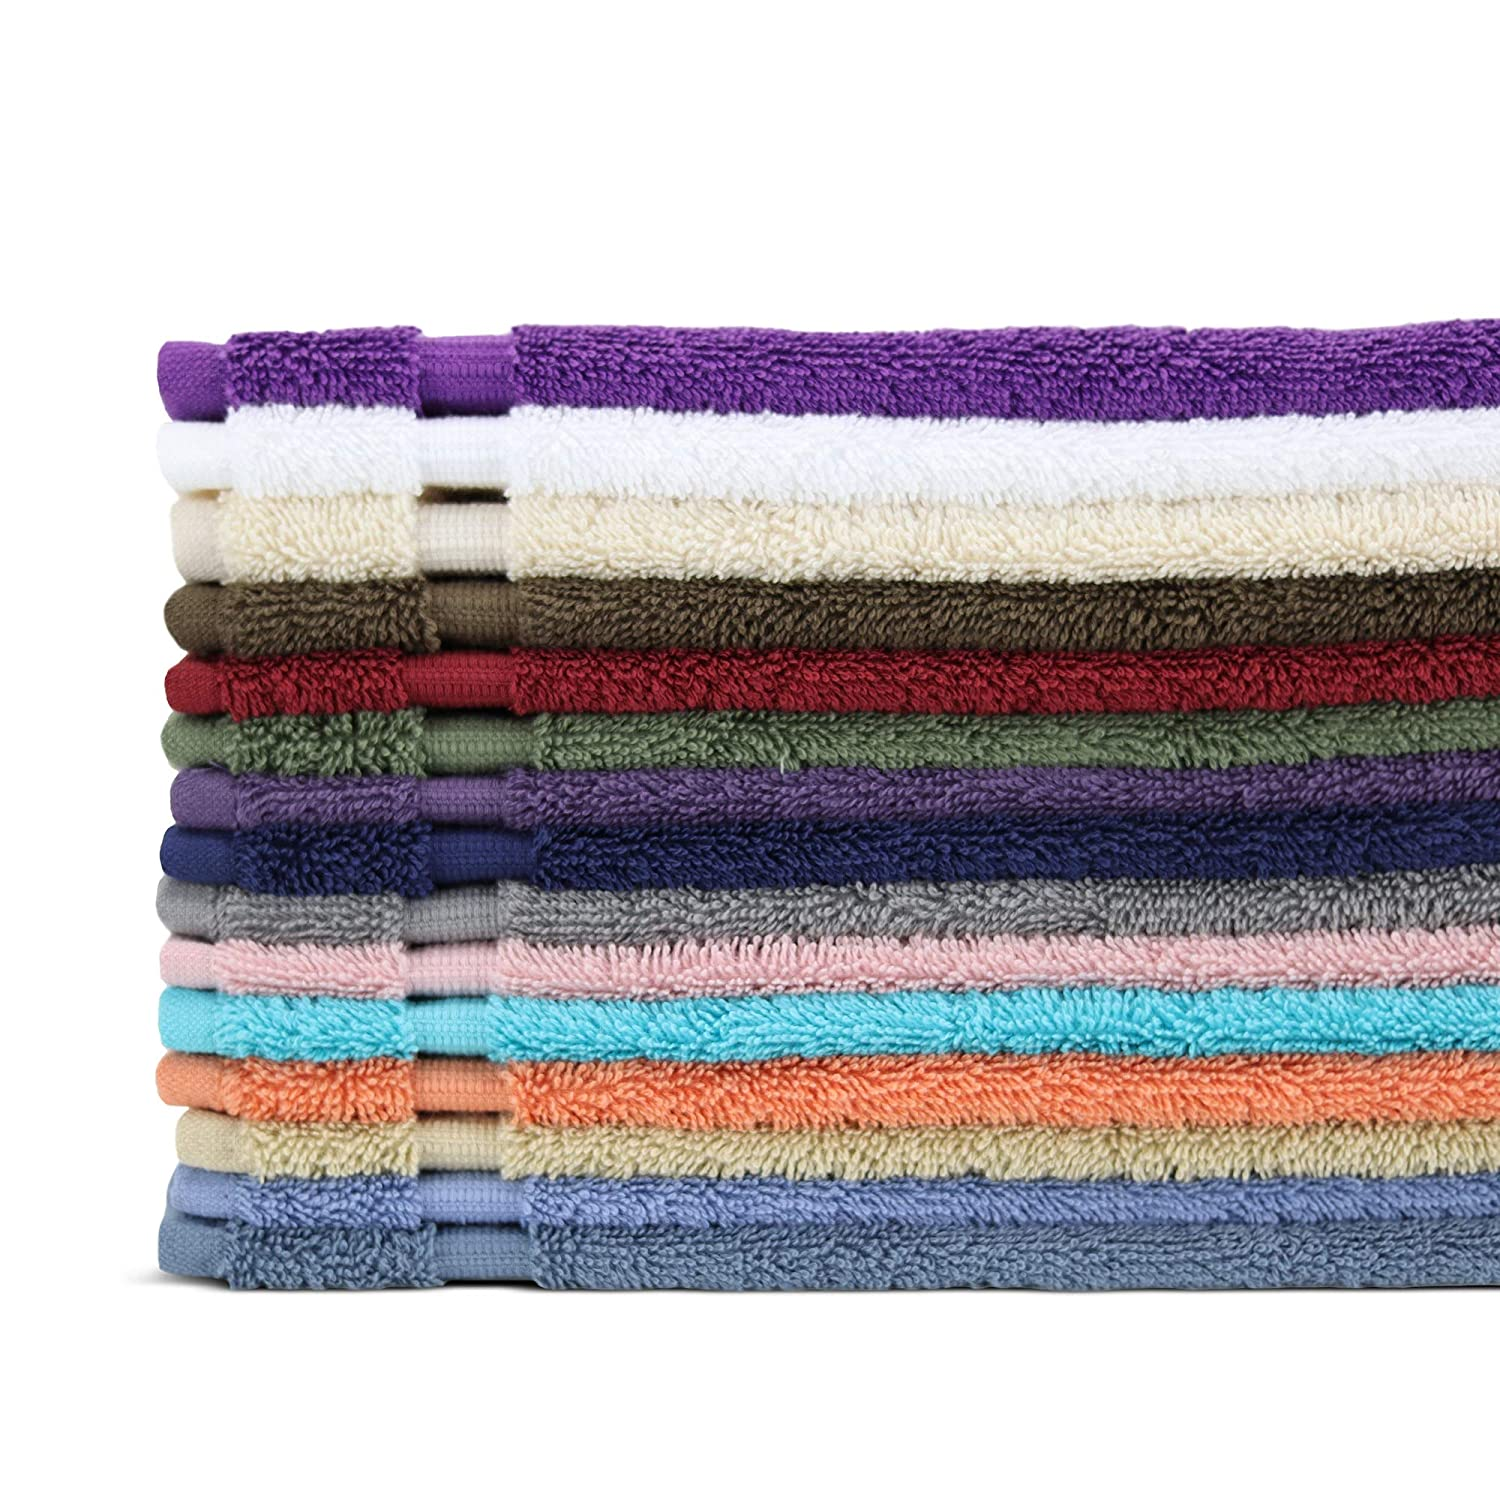 Towel Bazaar Premium Eco-Friendly 65% Turkish Cotton 35% Natural Organic Bamboo Rayon Hand Towel Set of 4, Multipurpose Bathroom Towels for Hand, Face, Gym and Spa (16 x 30 inches, White)